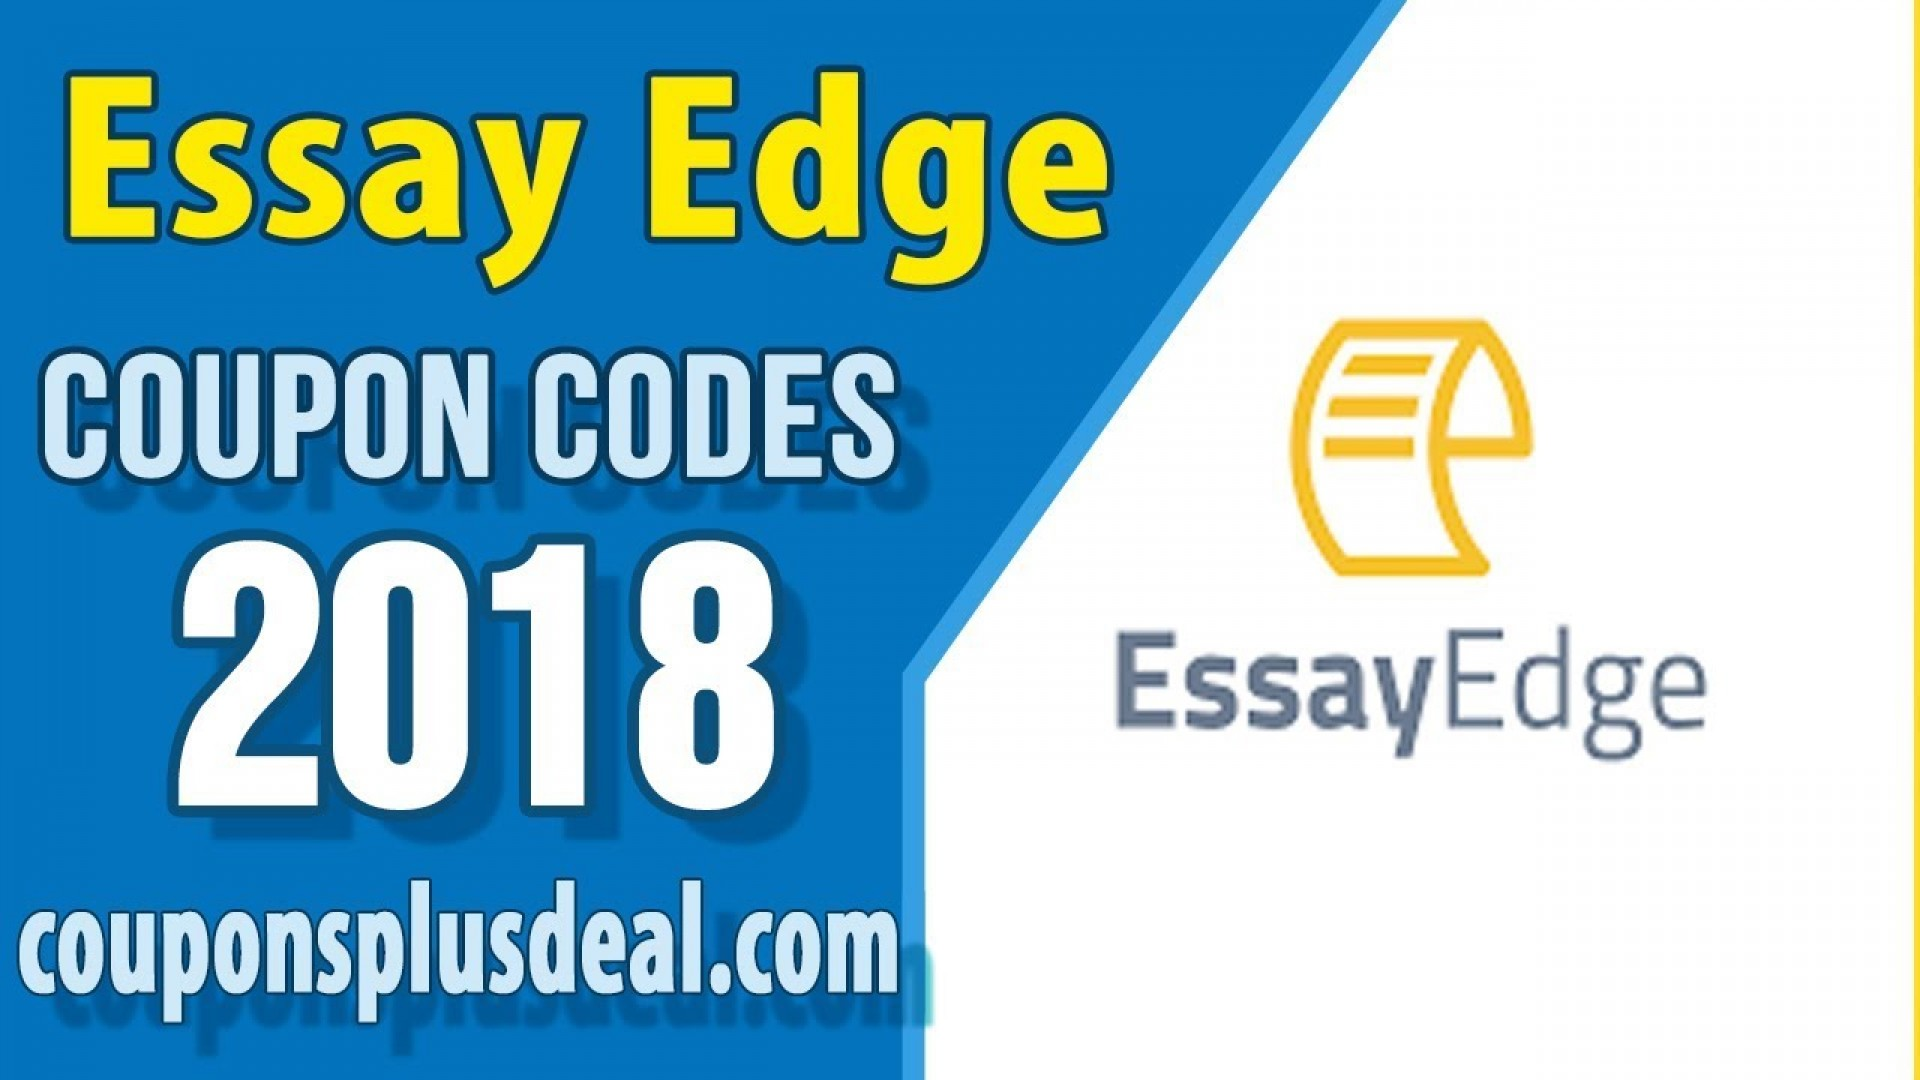 012 Essay Edge Maxresdefault Unusual Essayedge Review Coupon Code 1920